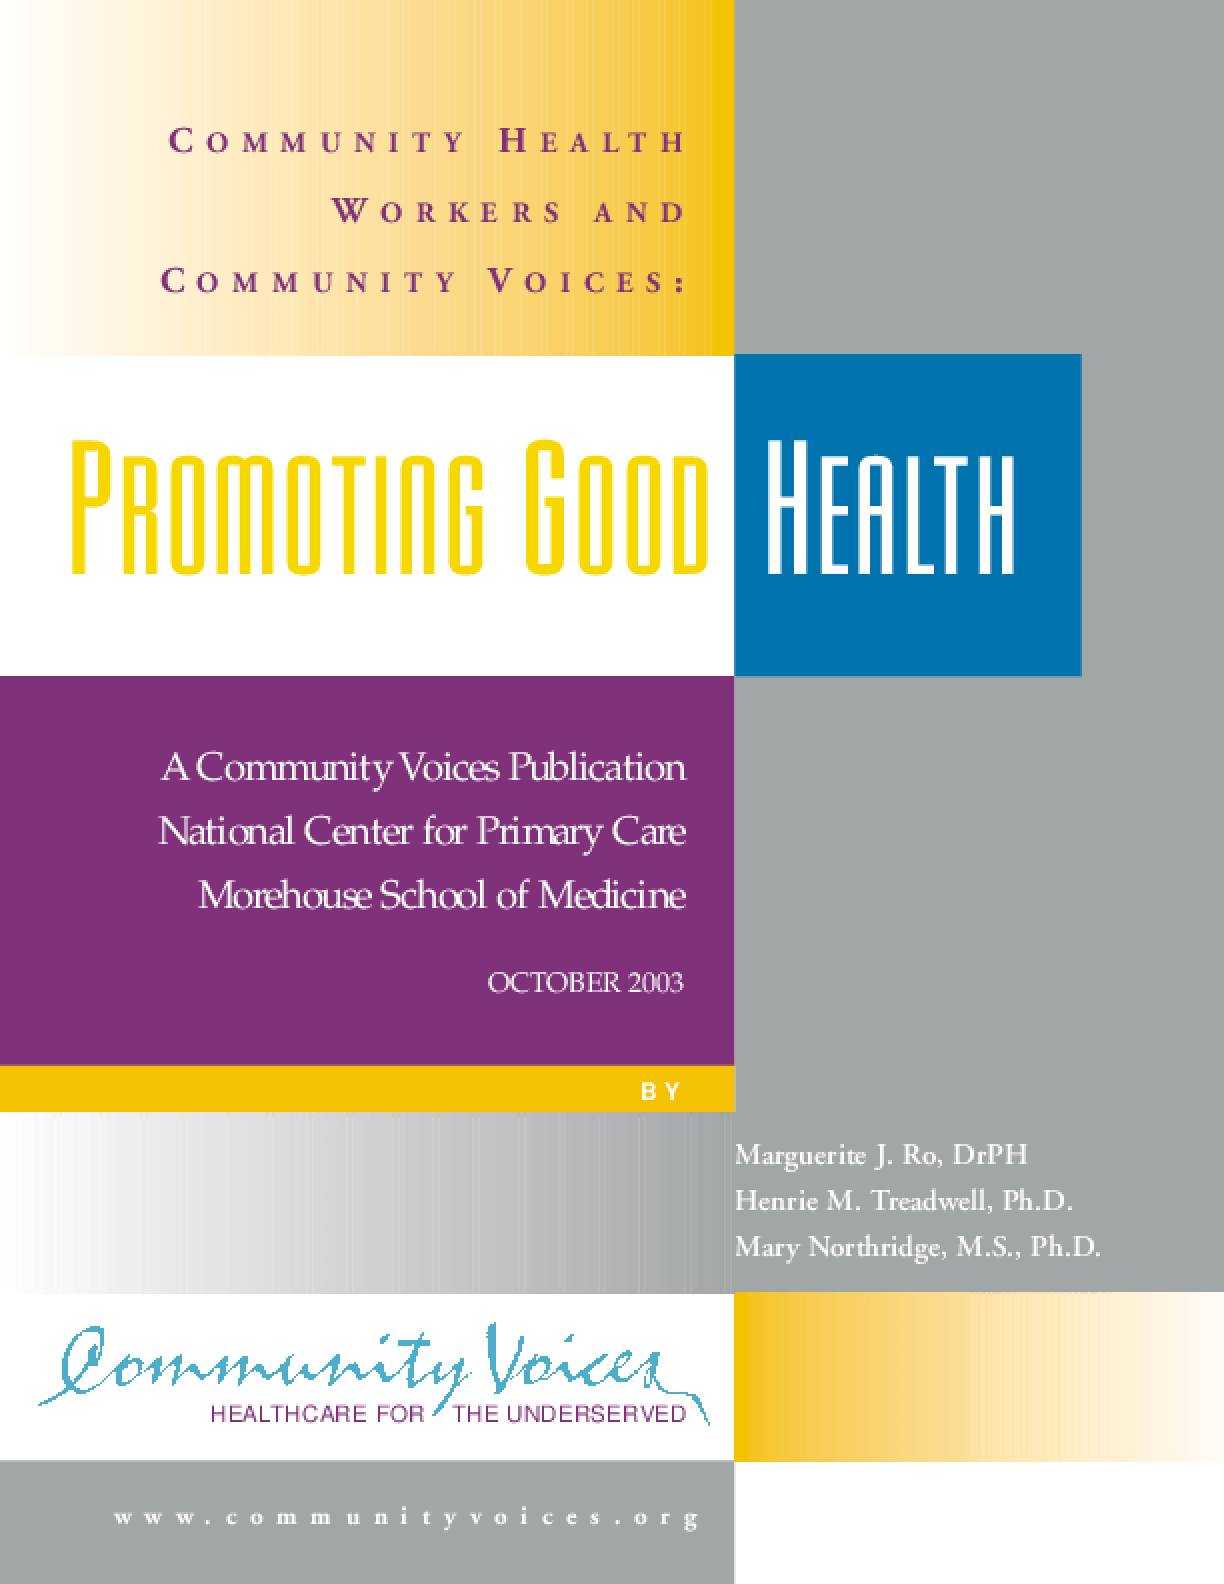 Community Health Workers and Community Voices: Promoting Good Health